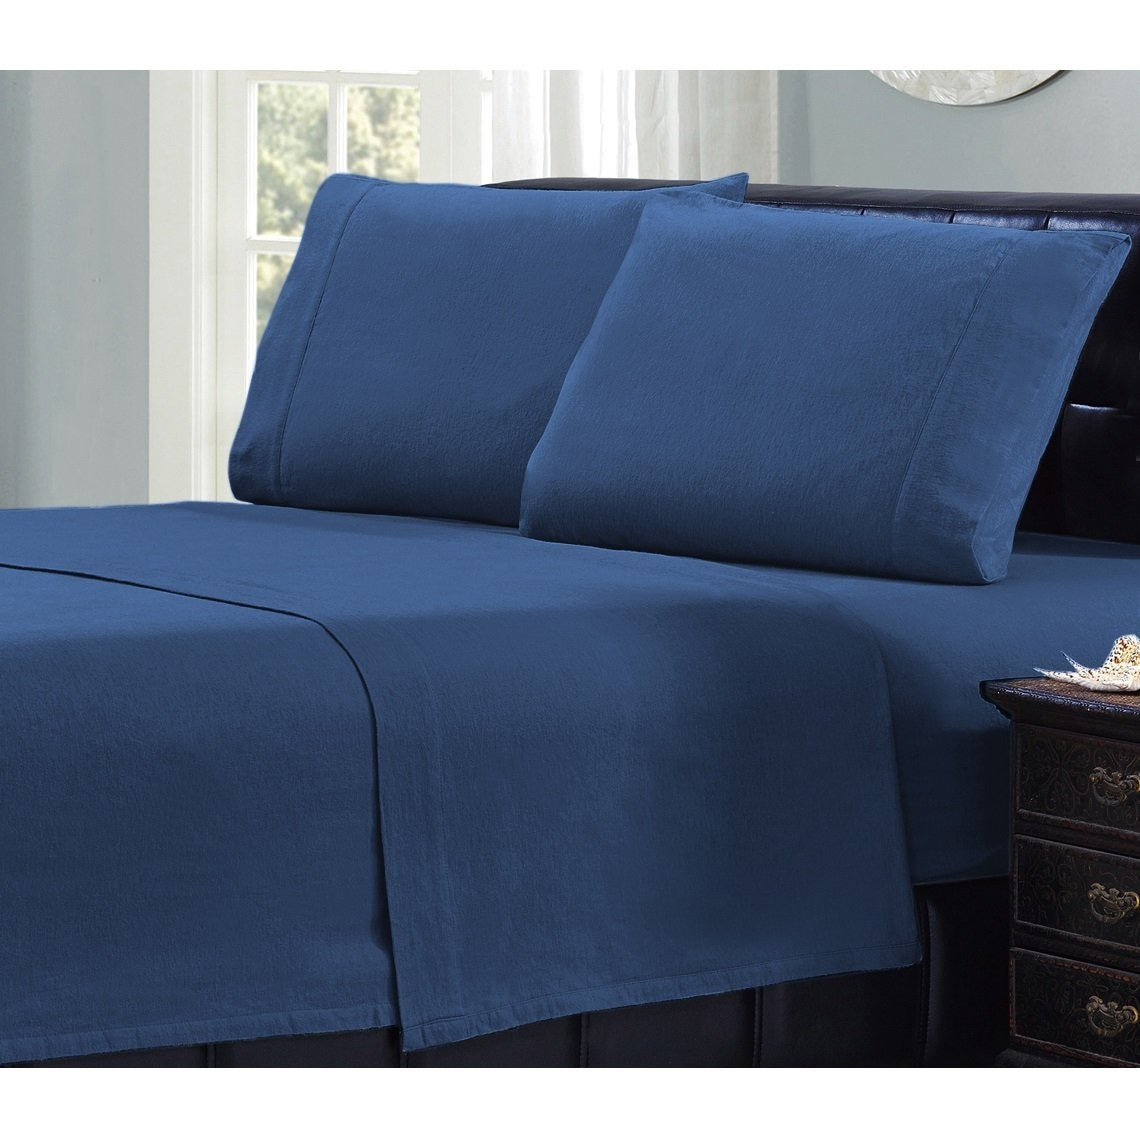 Amazing 3An Affordable Set Of U0027Durableu0027 Flannel Sheets That Fit All Mattress Sizes